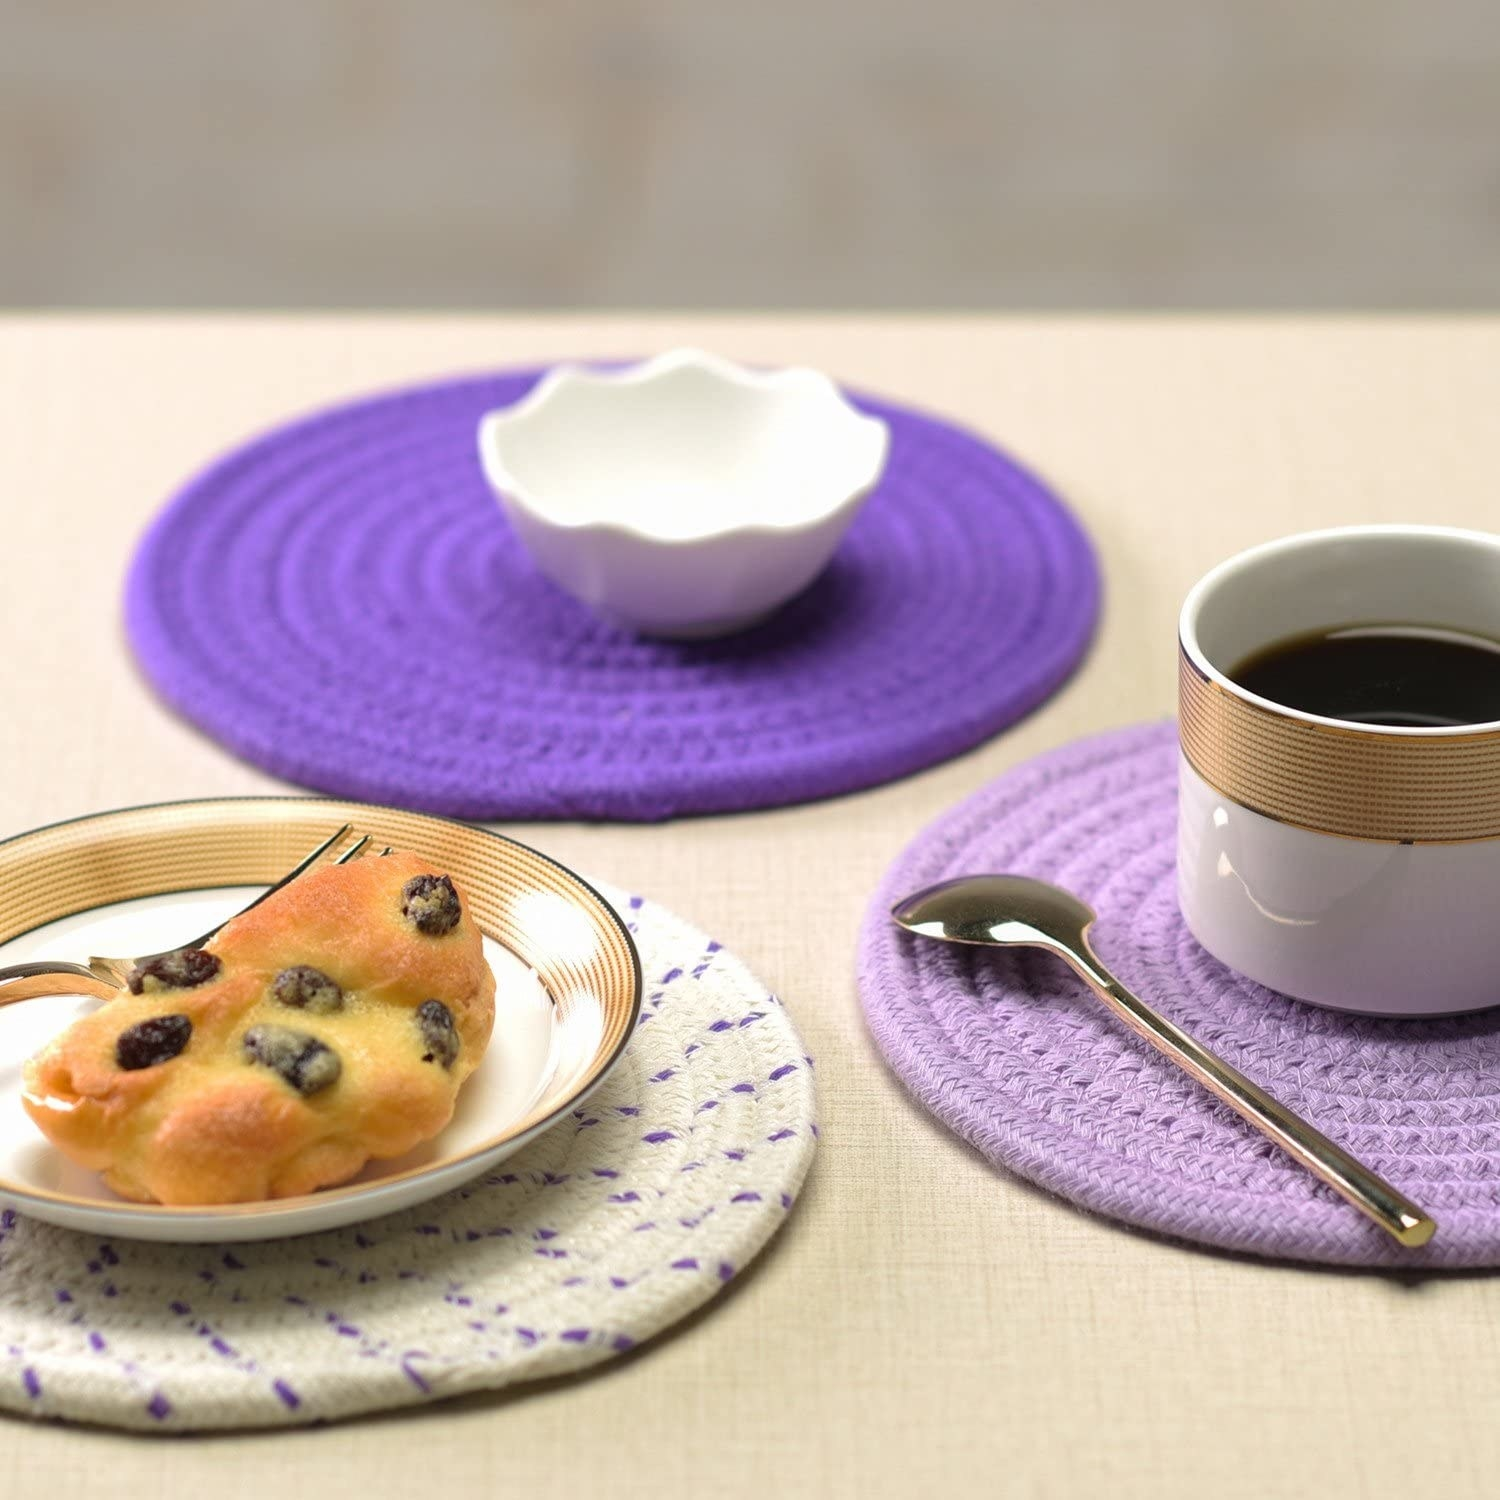 A trio of trivets under a coffee cup and a dessert plate